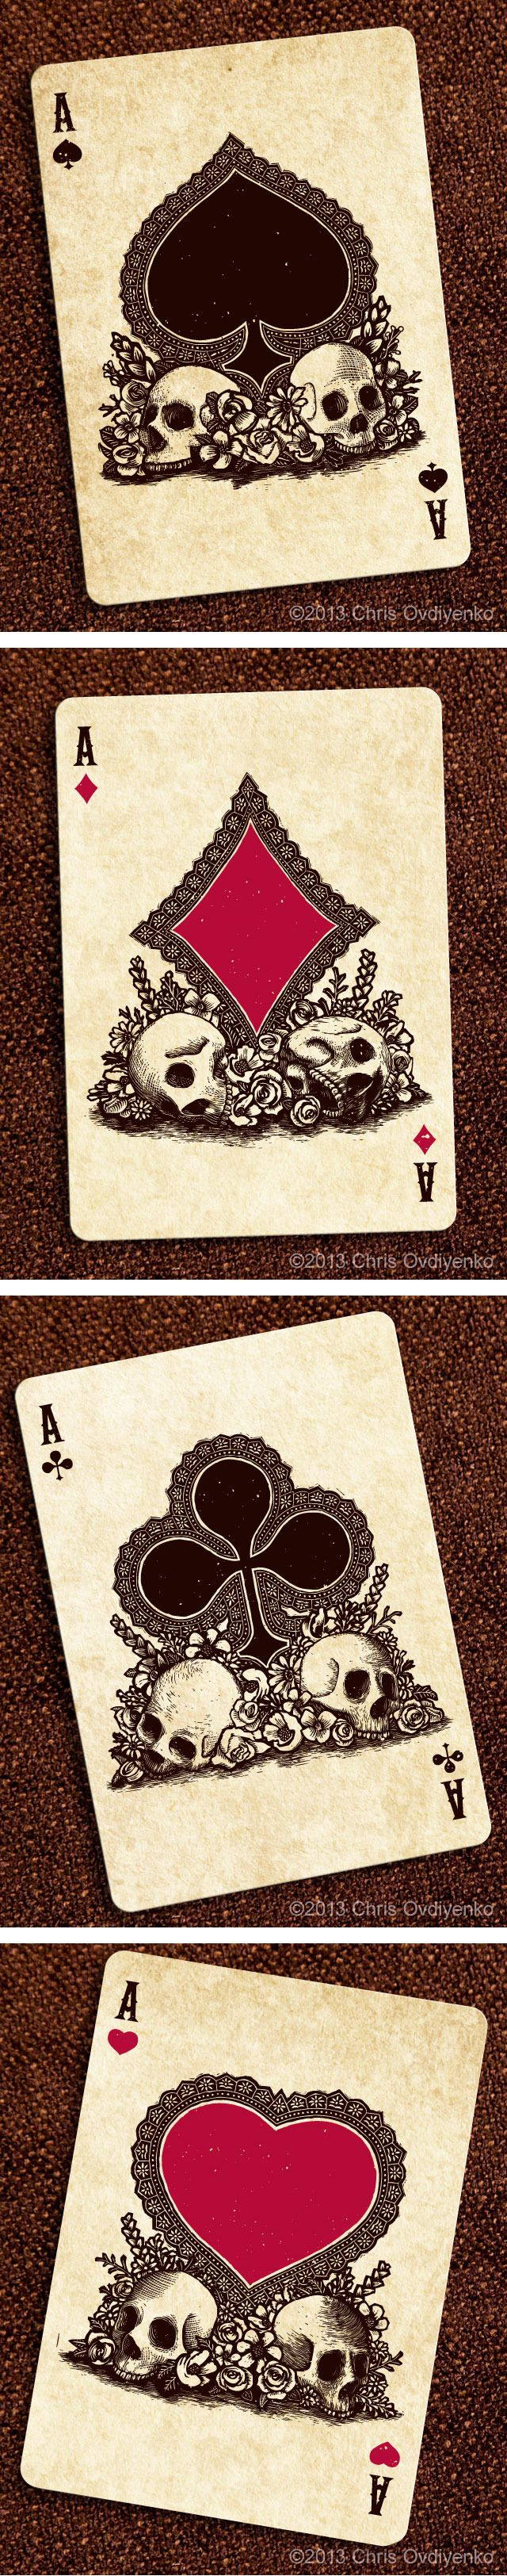 A♠ A♦ A♣ A♥ Calaveras — Playing cards inspired by the Day of the Dead by Chris Ovdiyenko